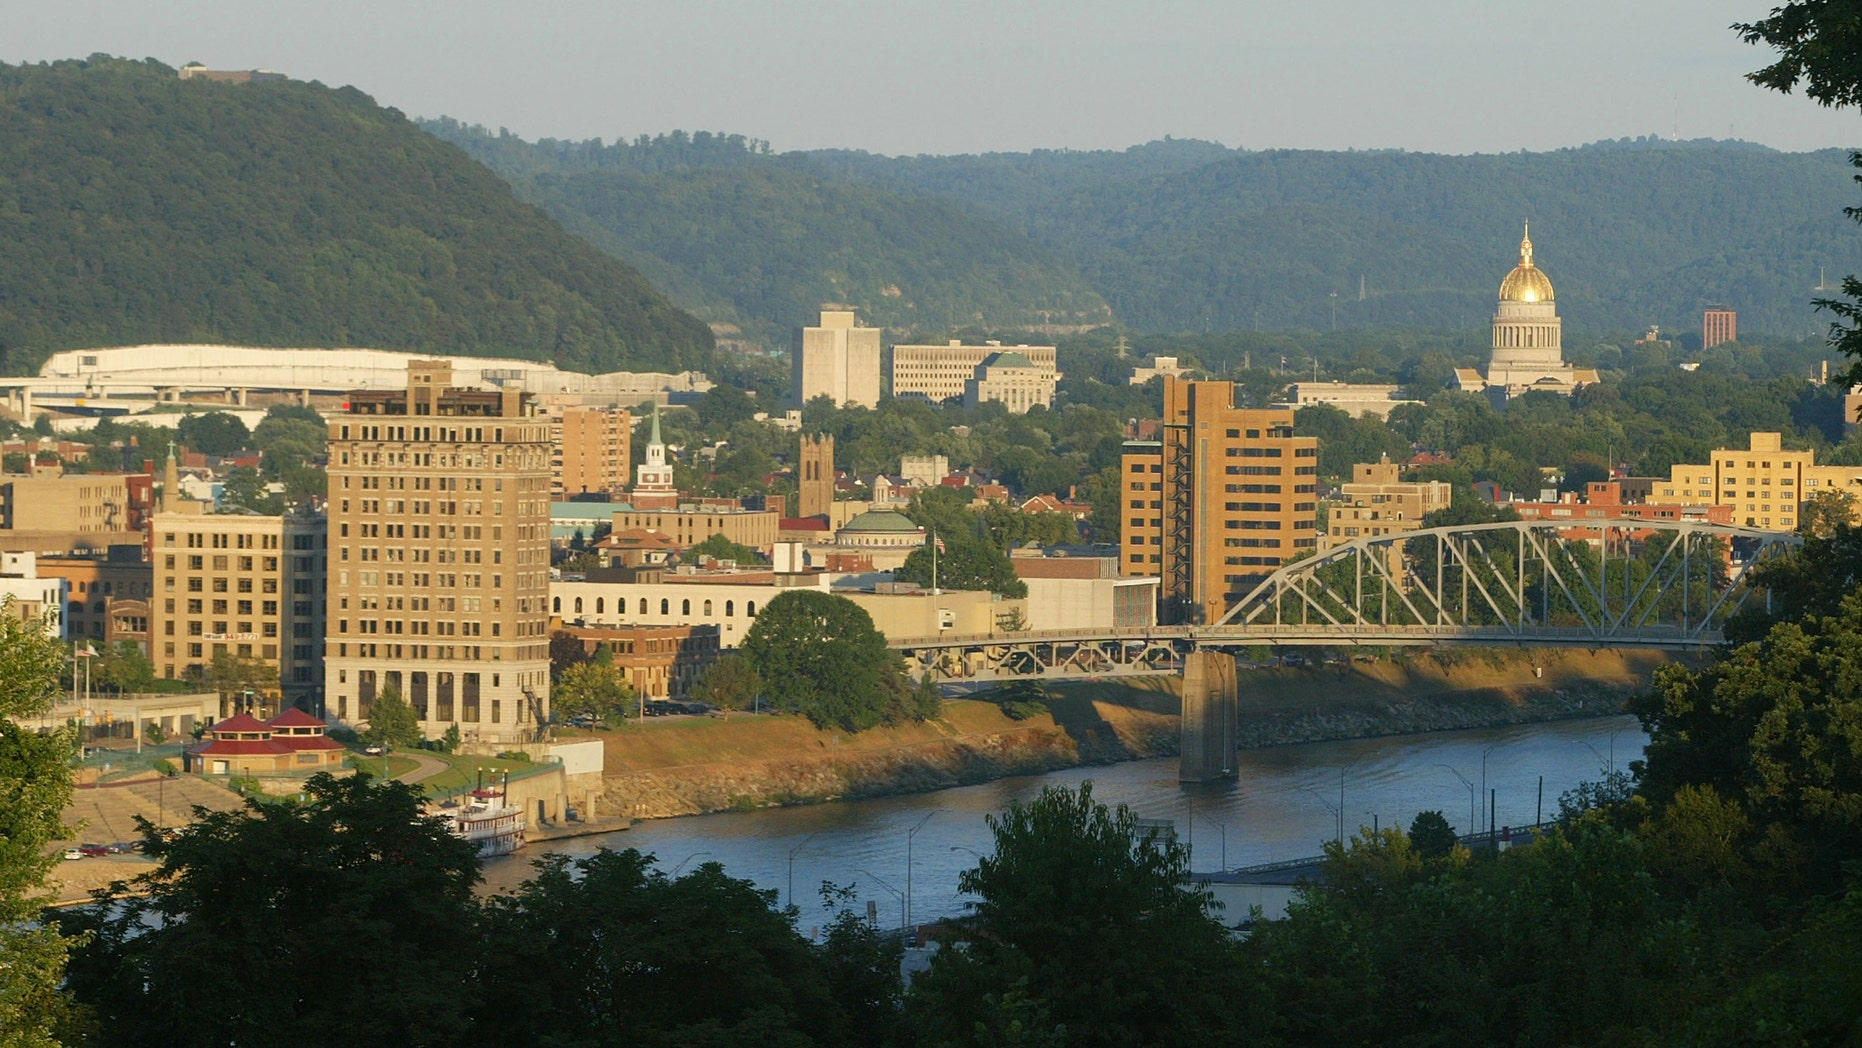 CHARLESTON, WV - AUGUST 23: The sun sets on the skyline August 23, 2003 of Charleston, West Virginia. An emergency task force of local, state and federal law enforcement agencies are trying to solve three murders, possibly by a serial sniper in and around the capital city. (Photo by Joe Raedle/Getty Images)